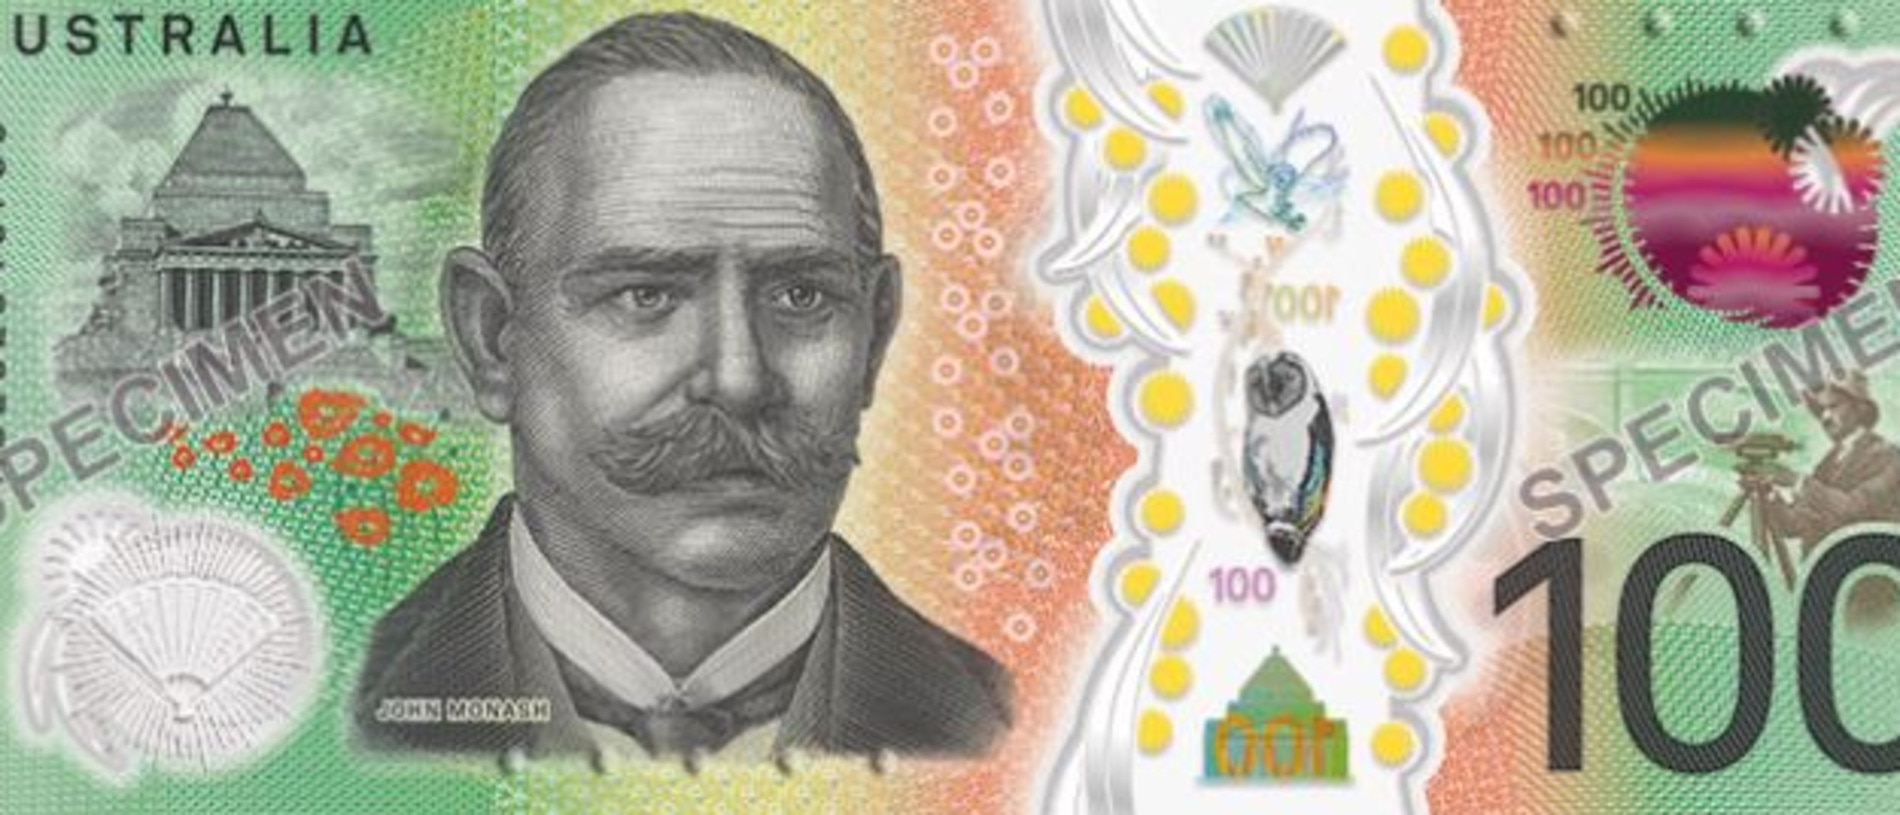 The other side of the $100 banknote featuring Sir John Monash. Picture: Reserve Bank